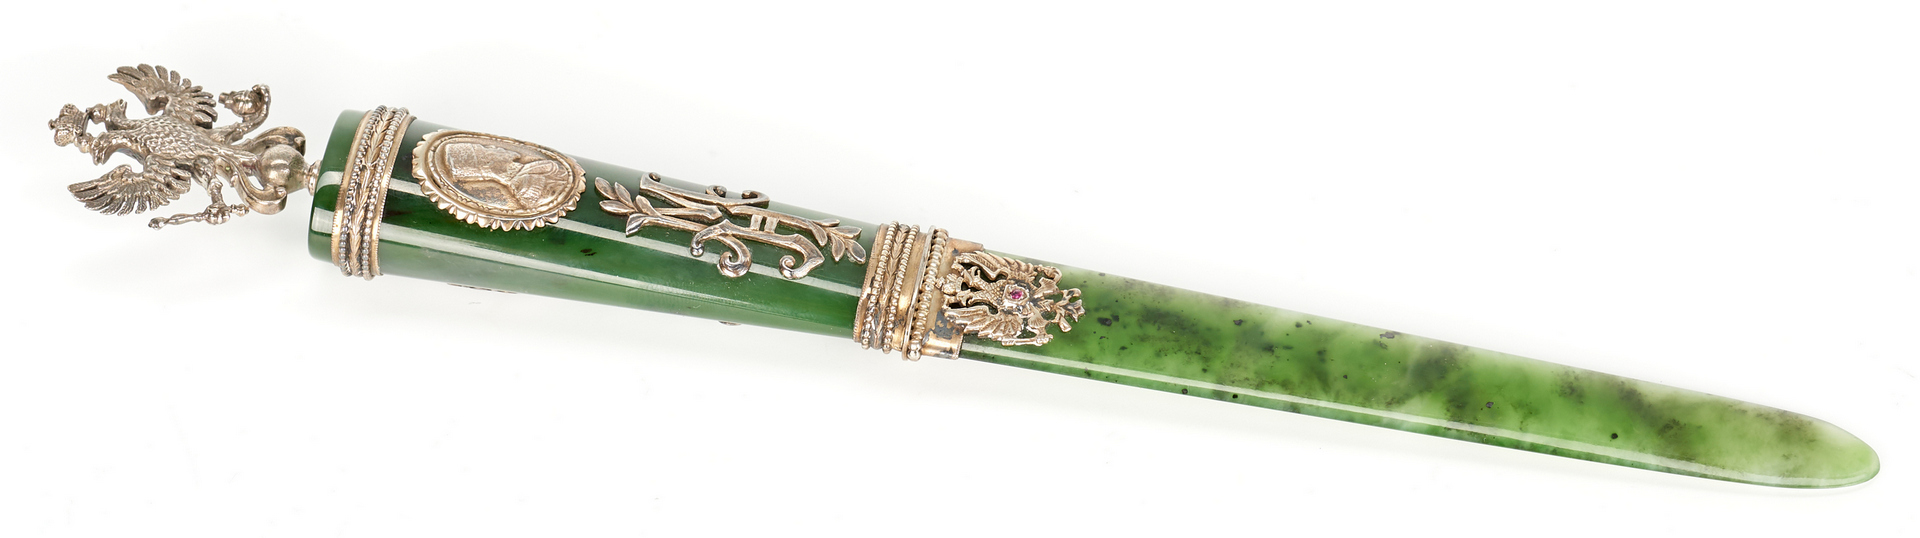 Lot 208: Russian Nephrite & Gilt Silver Paper Knife